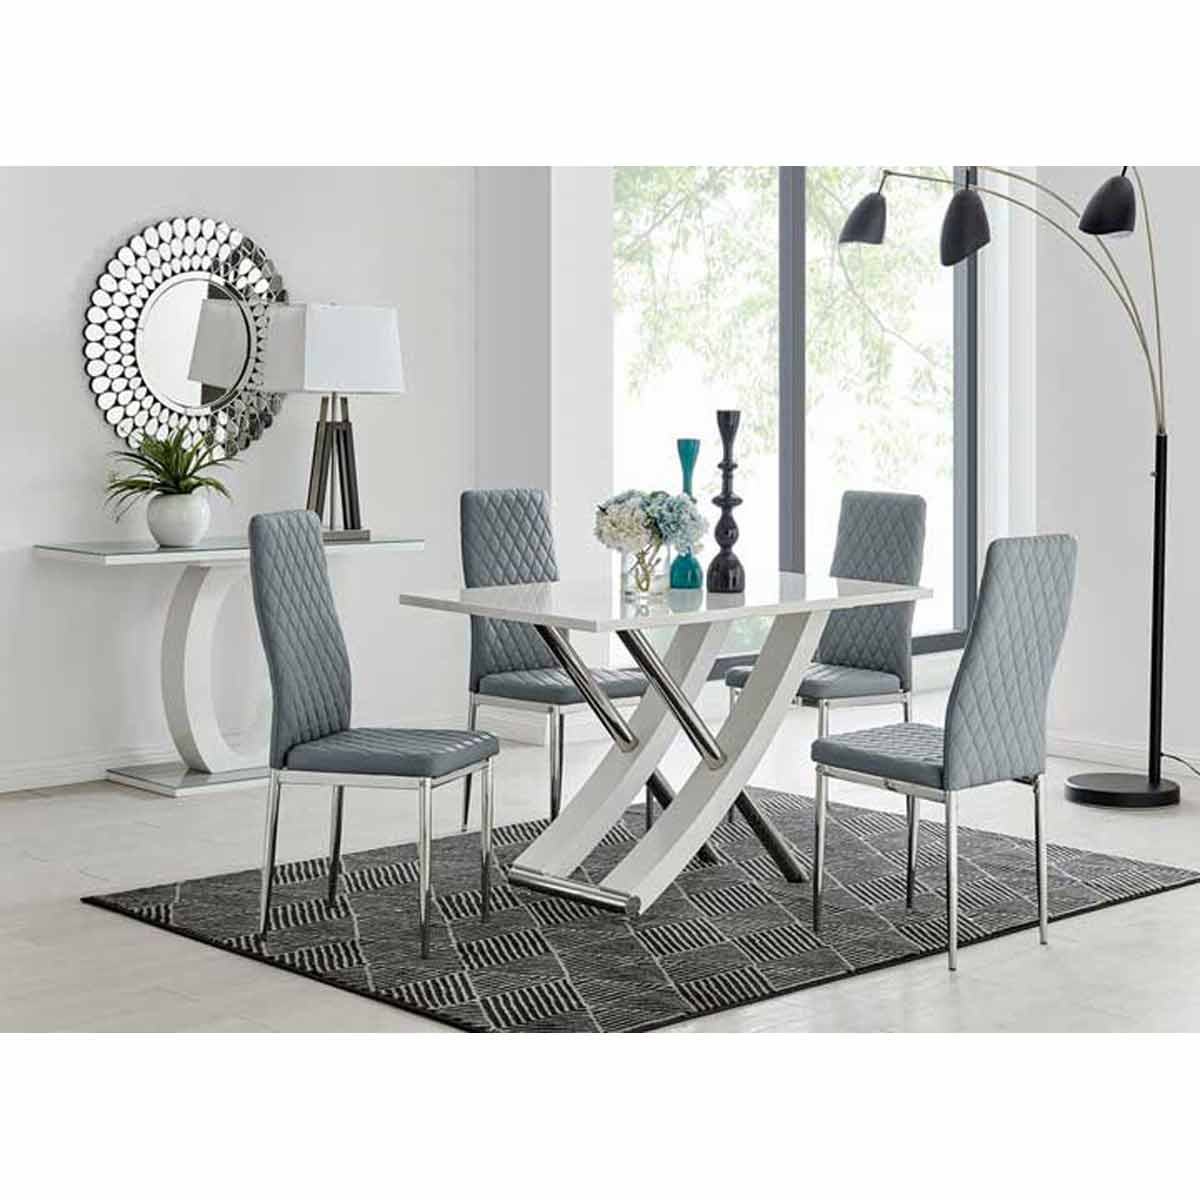 Furniture Box Mayfair 4 Seater White High Gloss And Stainless Steel Dining Table And 4 Grey Milan Chairs Set